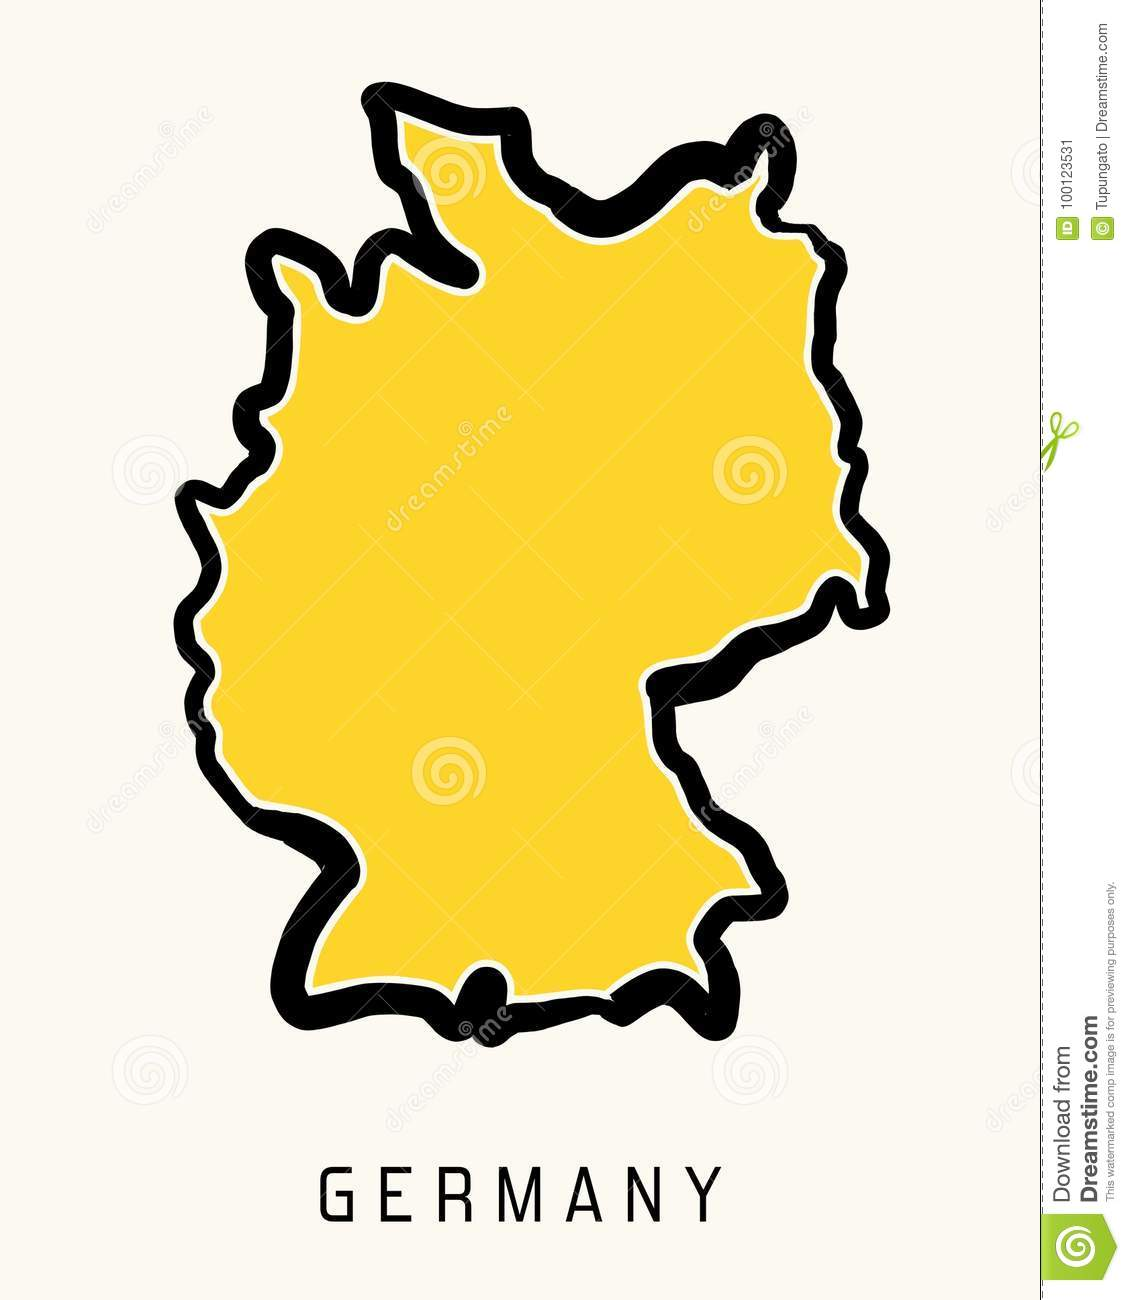 Simple Map Of Germany.Germany Vector Map Stock Vector Illustration Of Handwritten 100123531